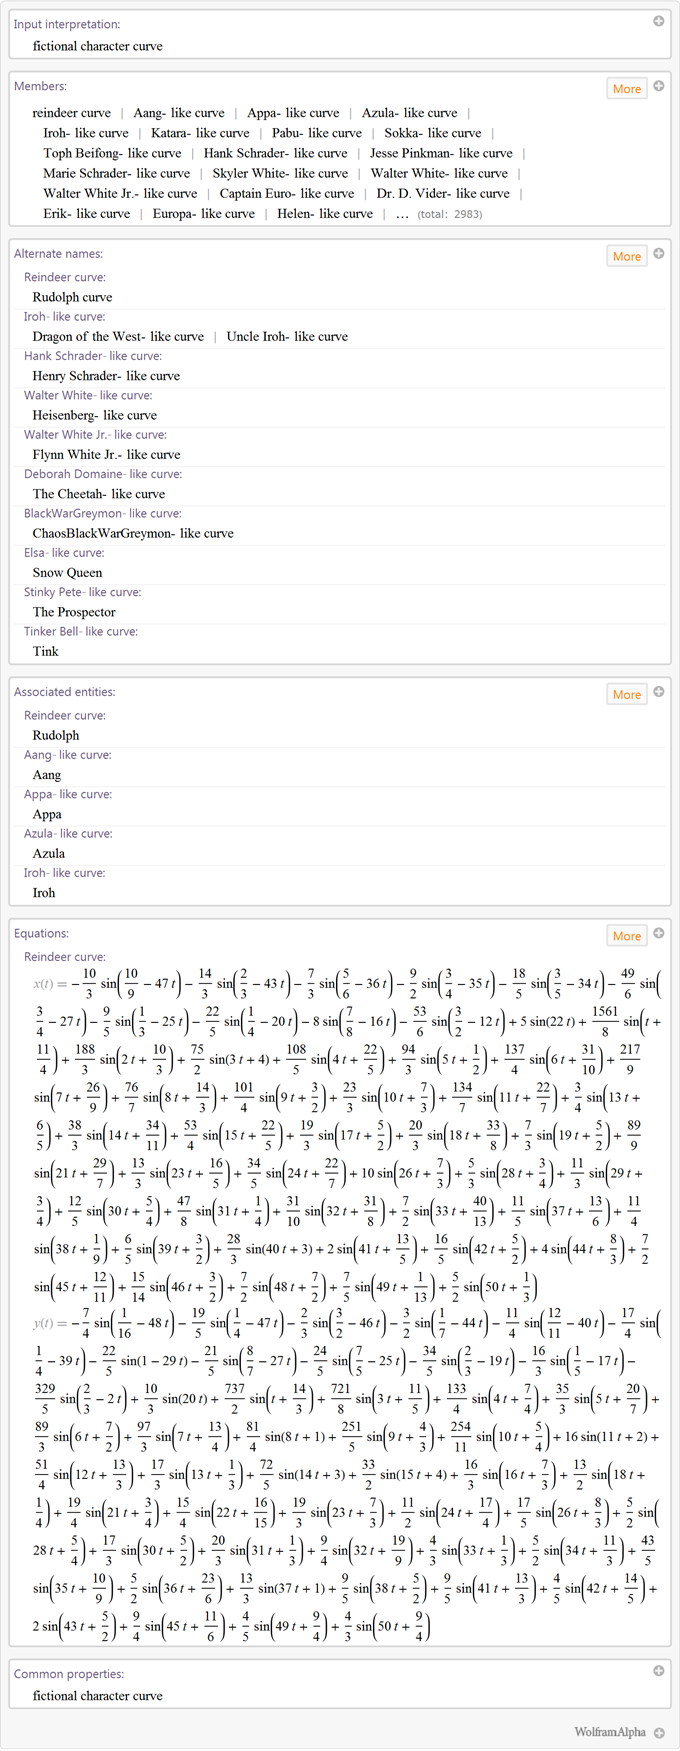 making-formulas-for-everything-from-pi-to-the-pink-panther-to-sir-isaac-newton_2.png